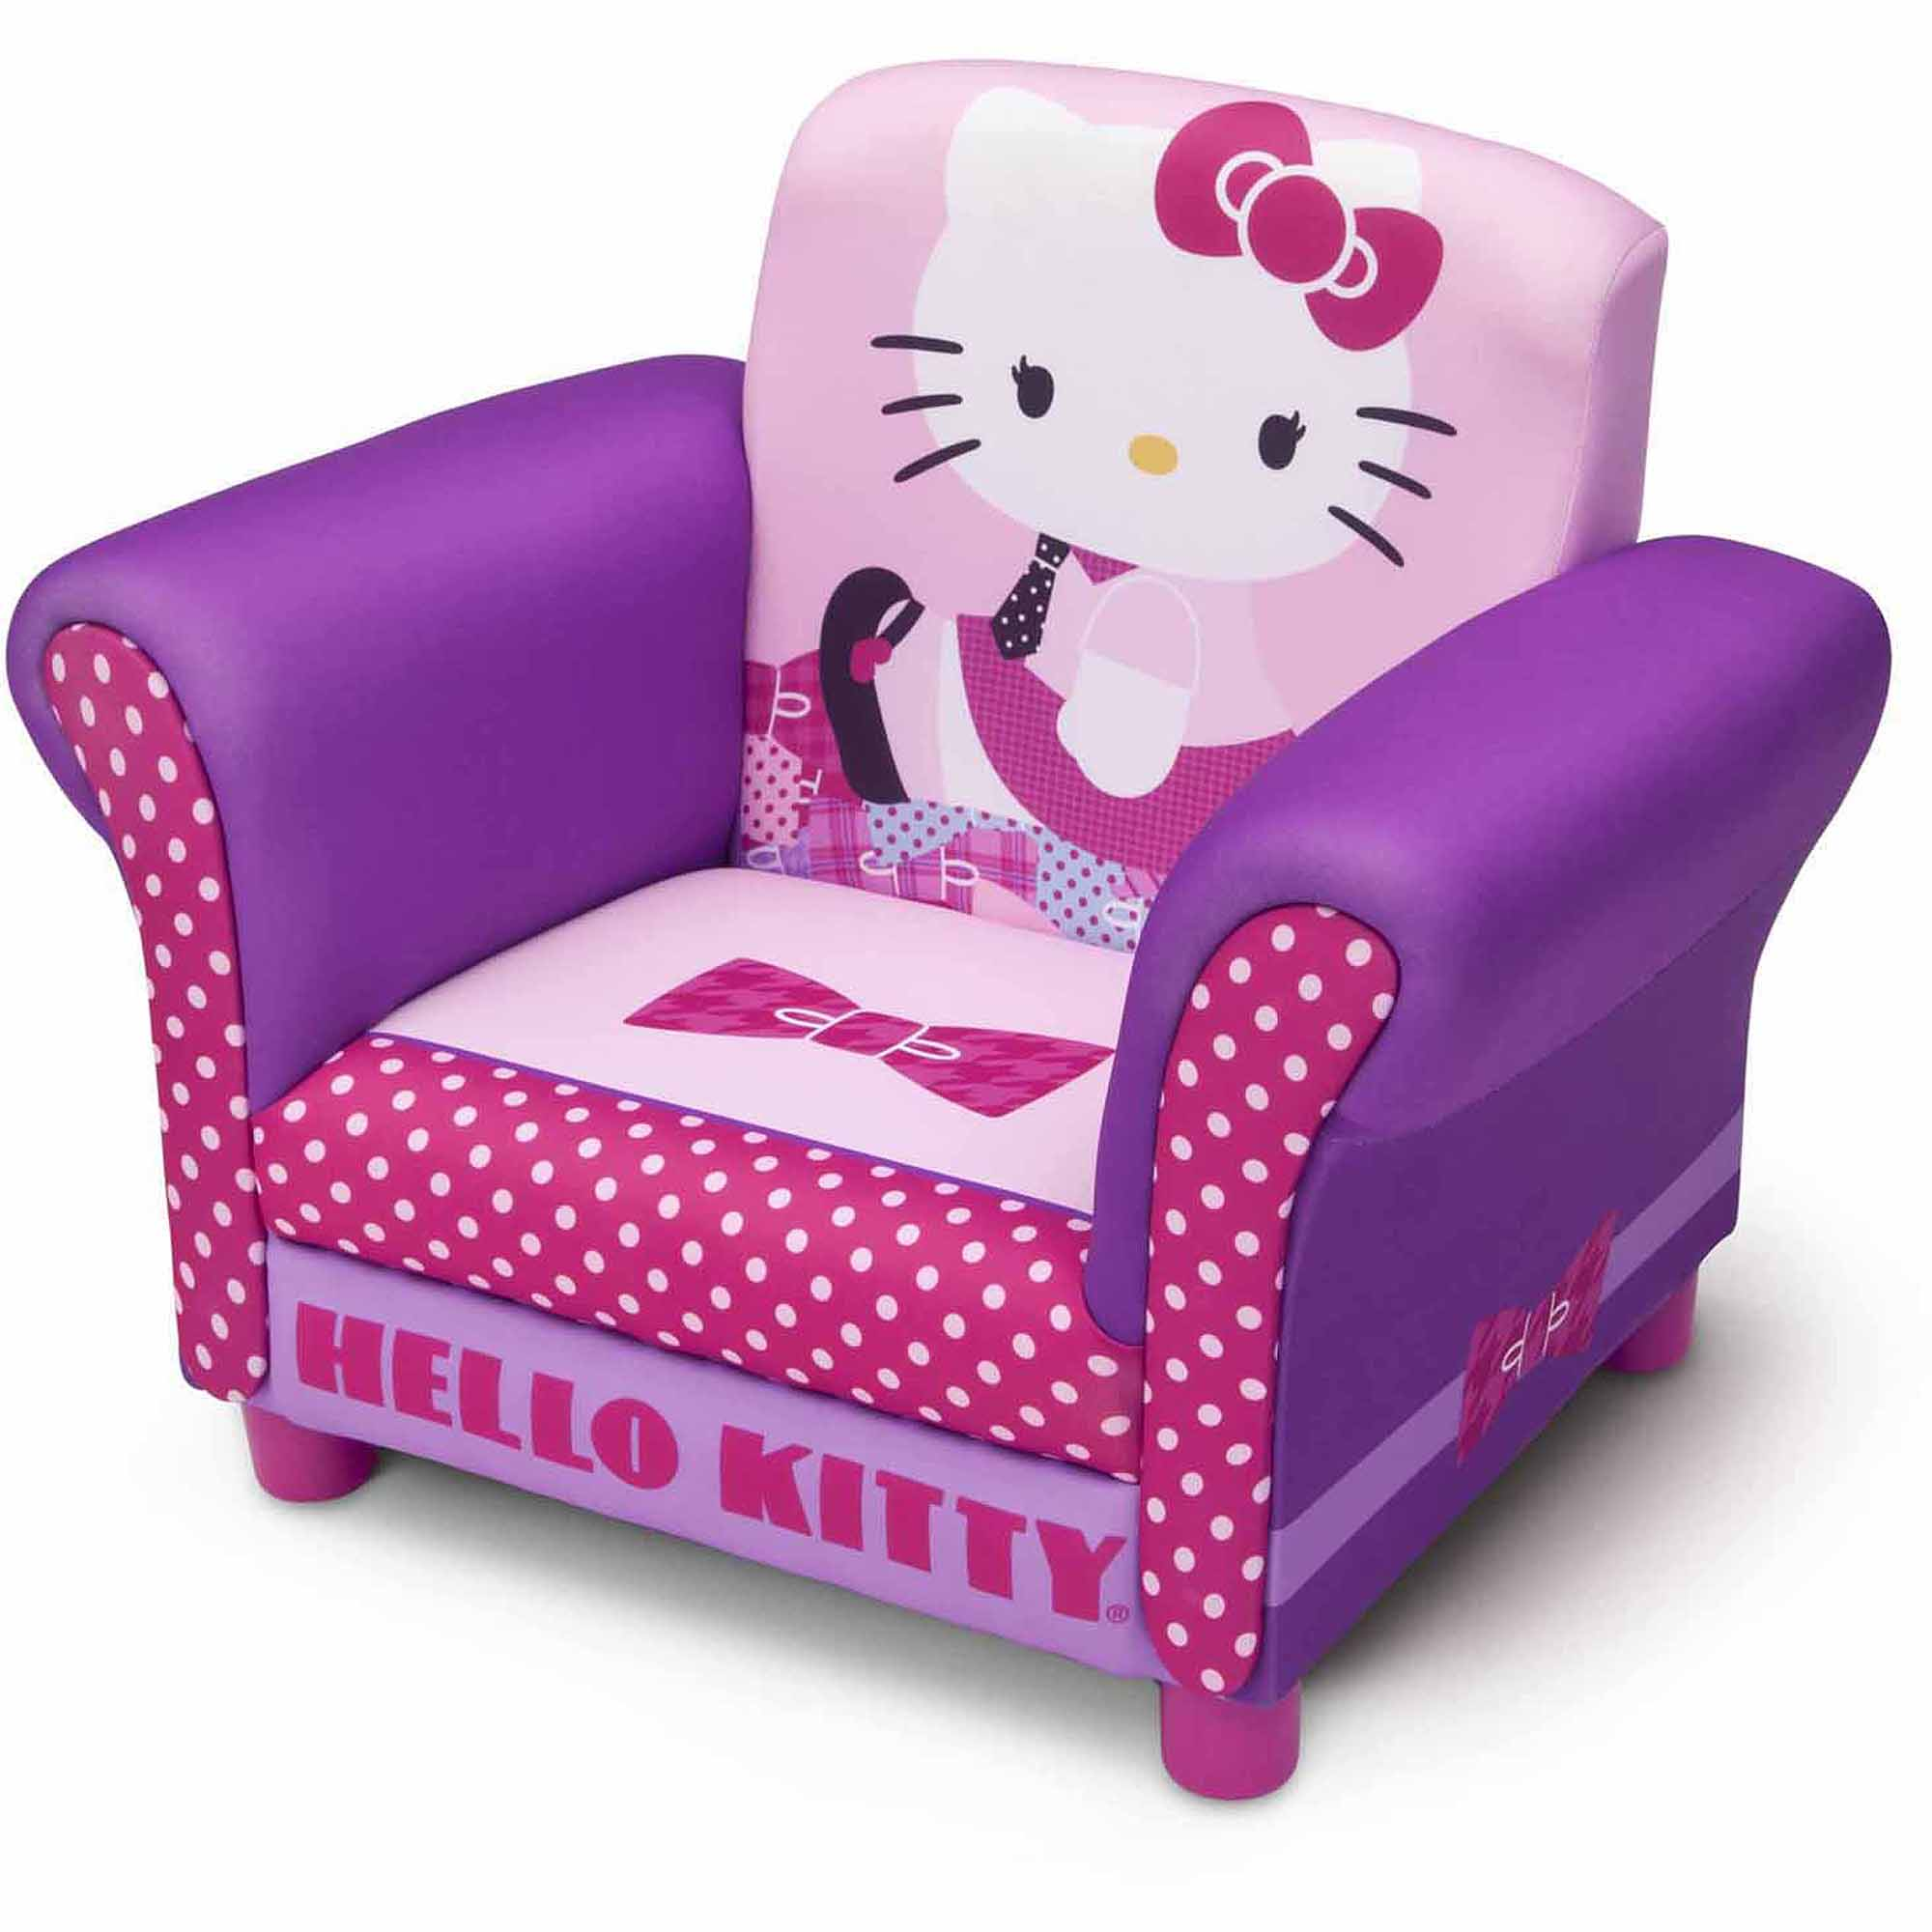 Attrayant Delta Children Hello Kitty Upholstered Chair   Walmart.com